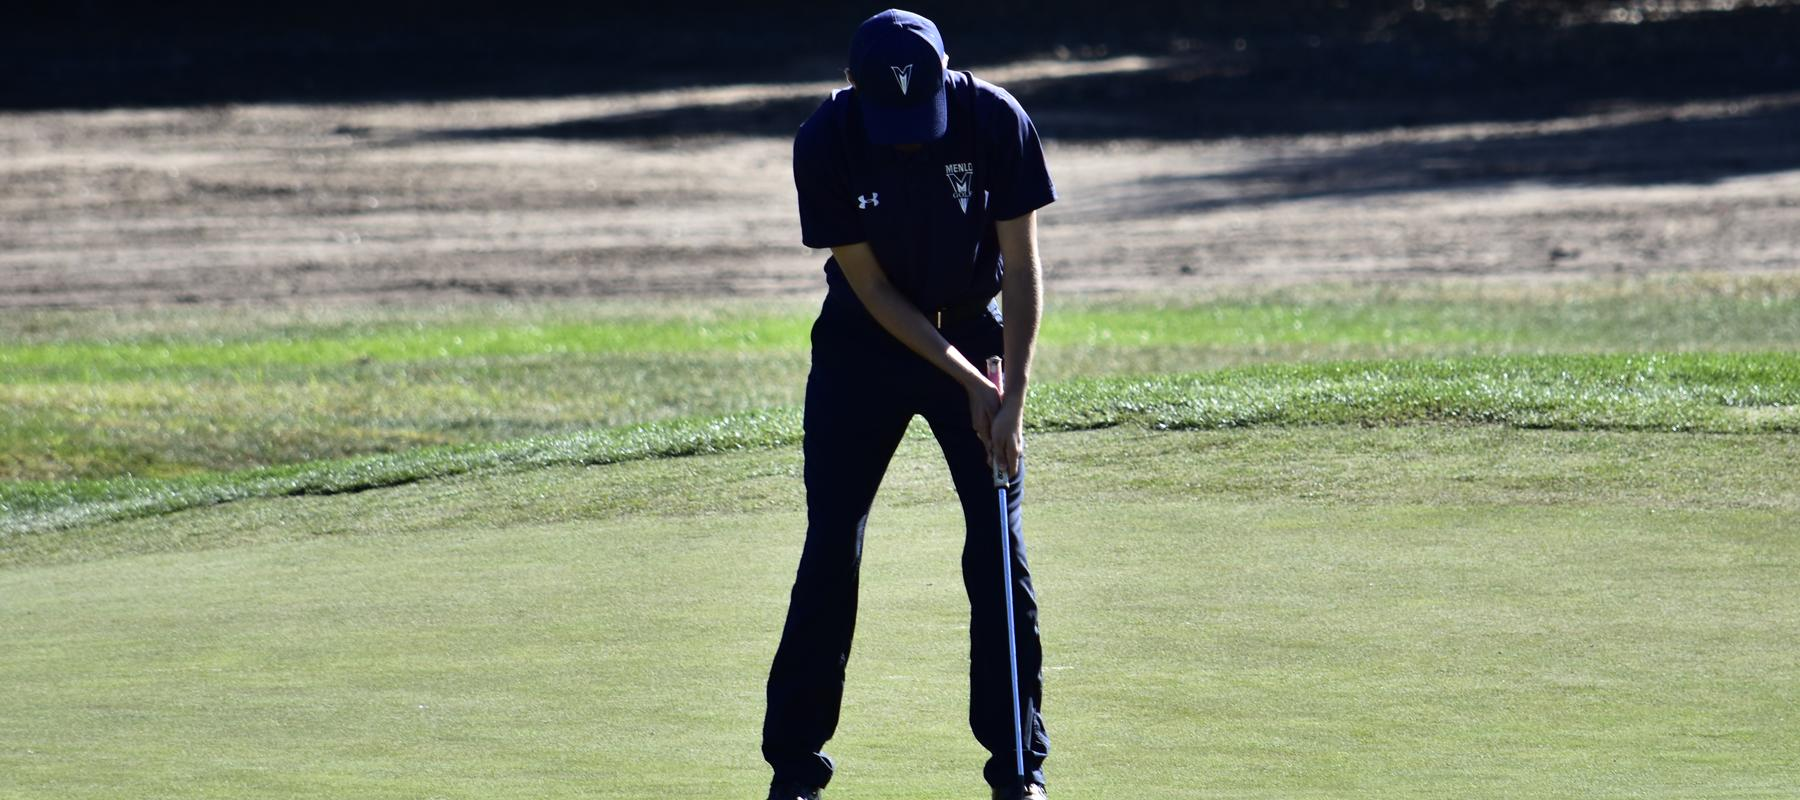 Fredrik Ingul in the lead, Men's Golf tied for Third after Day one